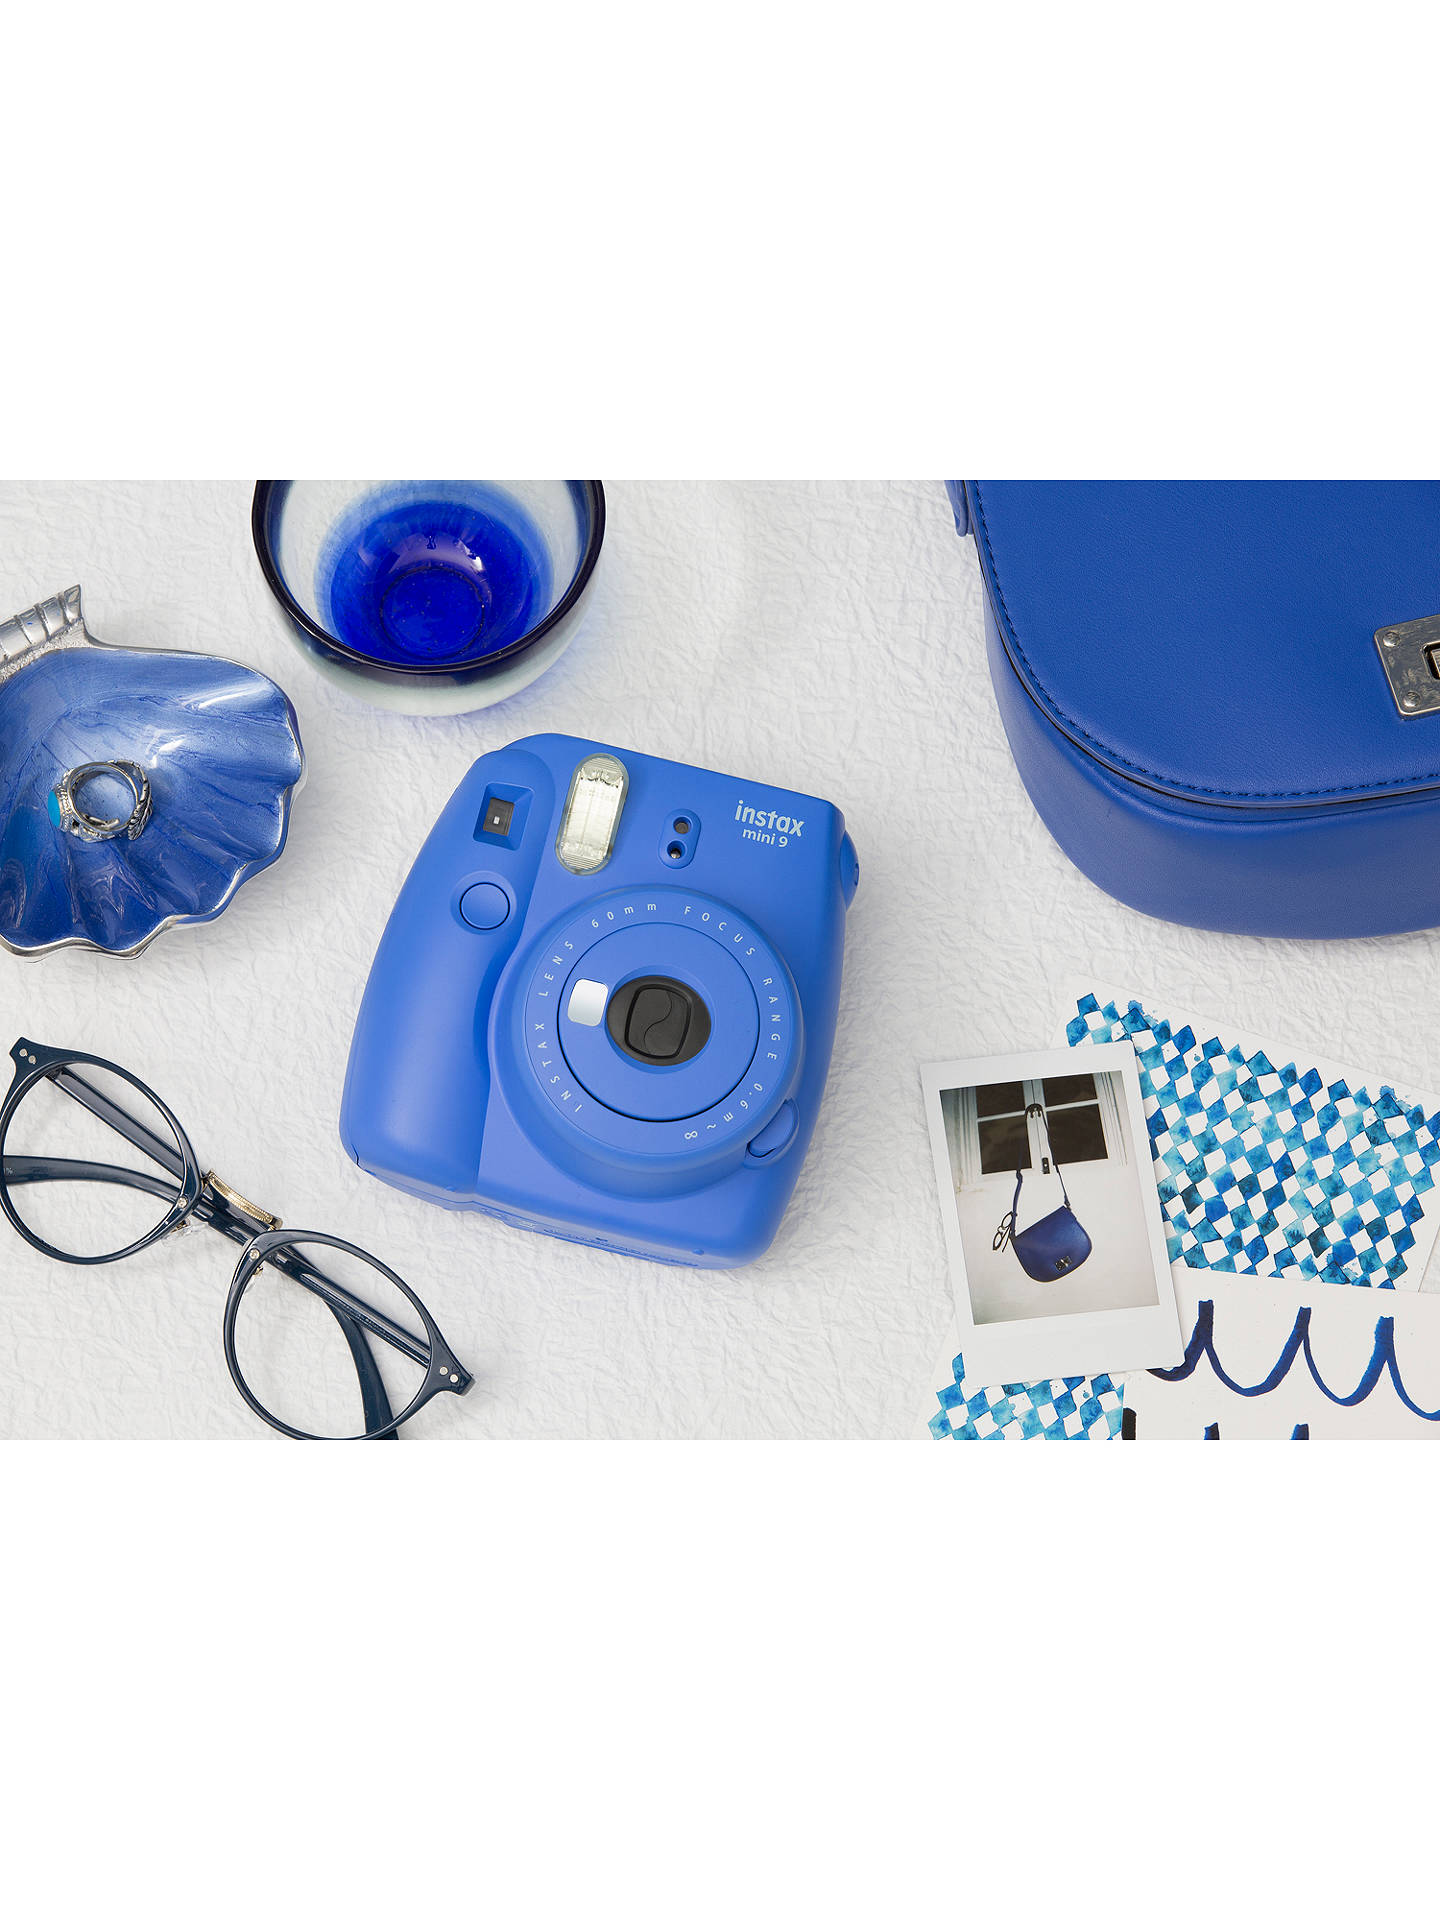 Buy Fujifilm Instax Mini 9 Instant Camera with 10 Shots of Film, Built-In Flash & Hand Strap, Cobalt Blue Online at johnlewis.com